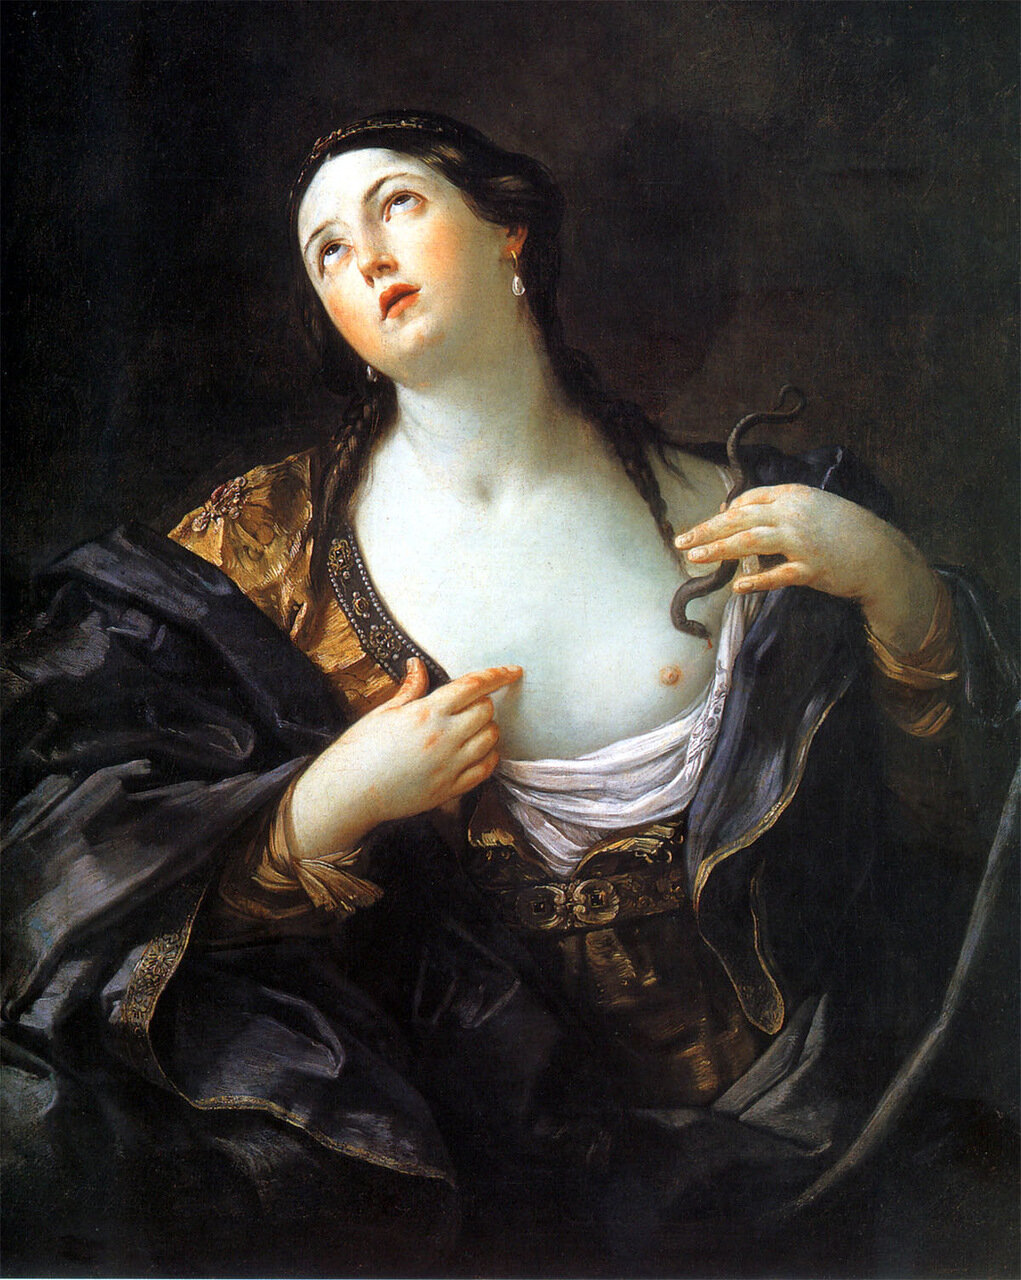 Death of Cleopatra by Guido Reni c. 1639 oil on canvas Potsdam Neues Palai